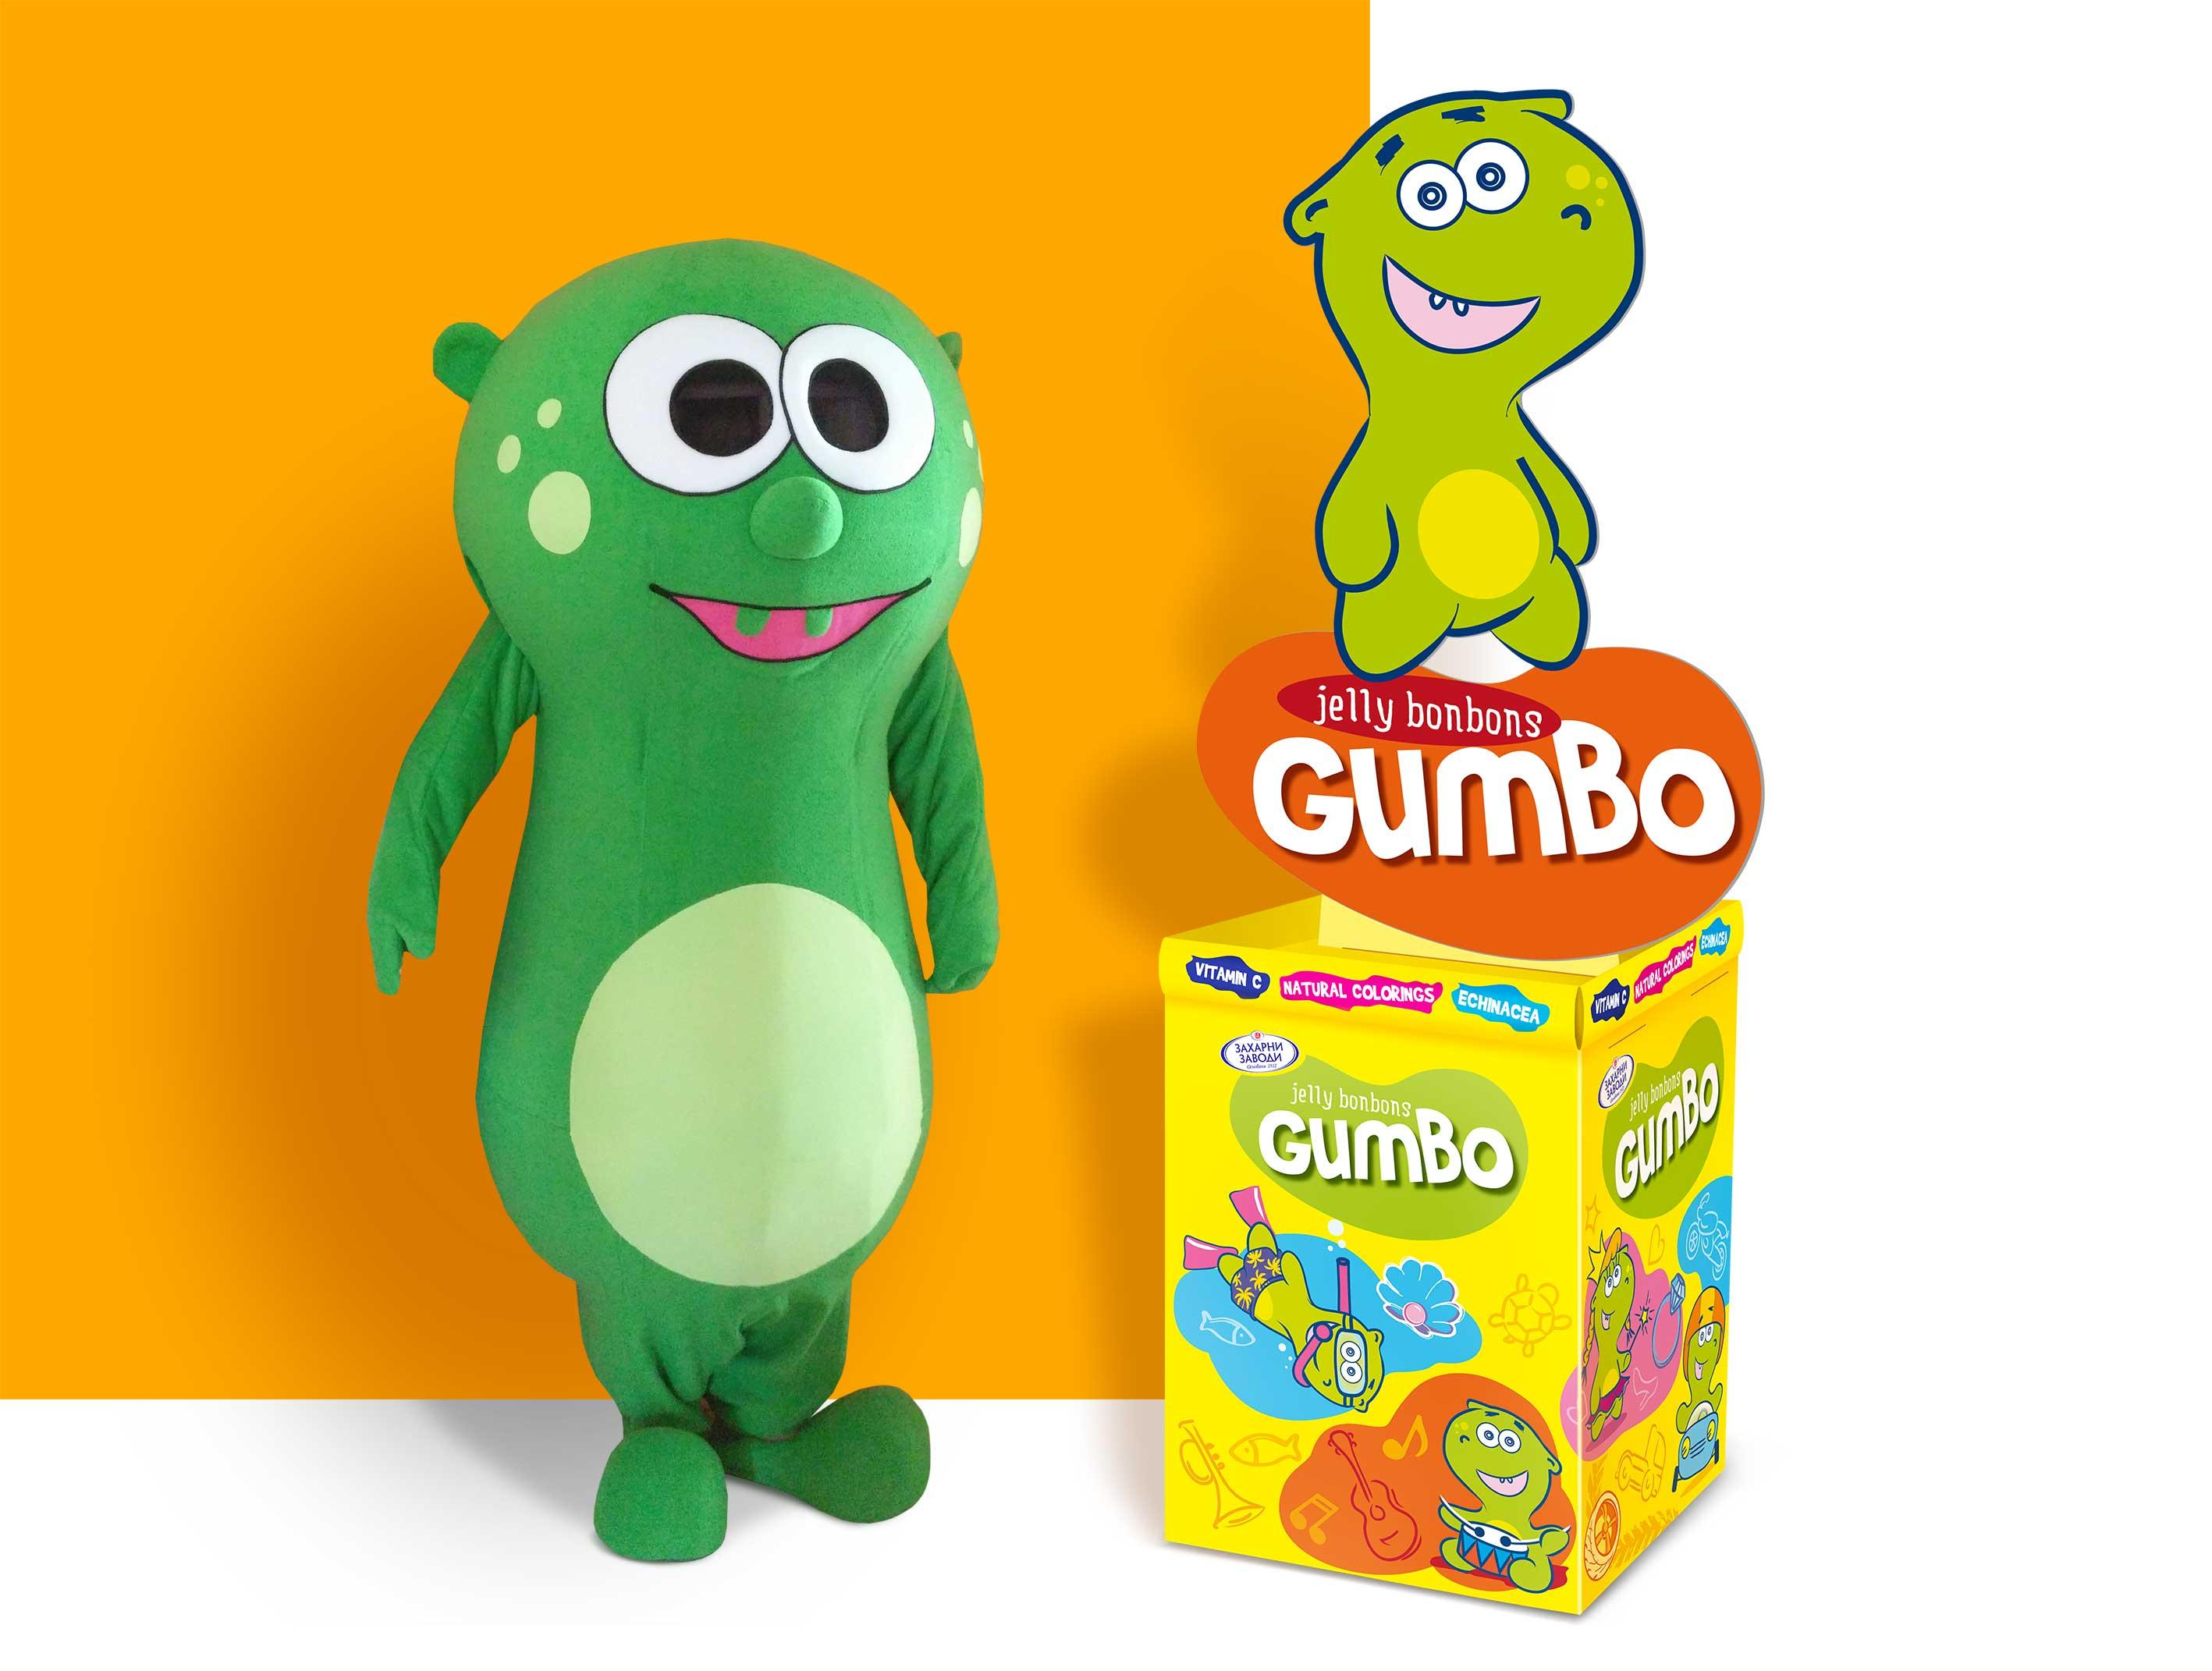 GUMBO is ALIVE and is ready to make friends